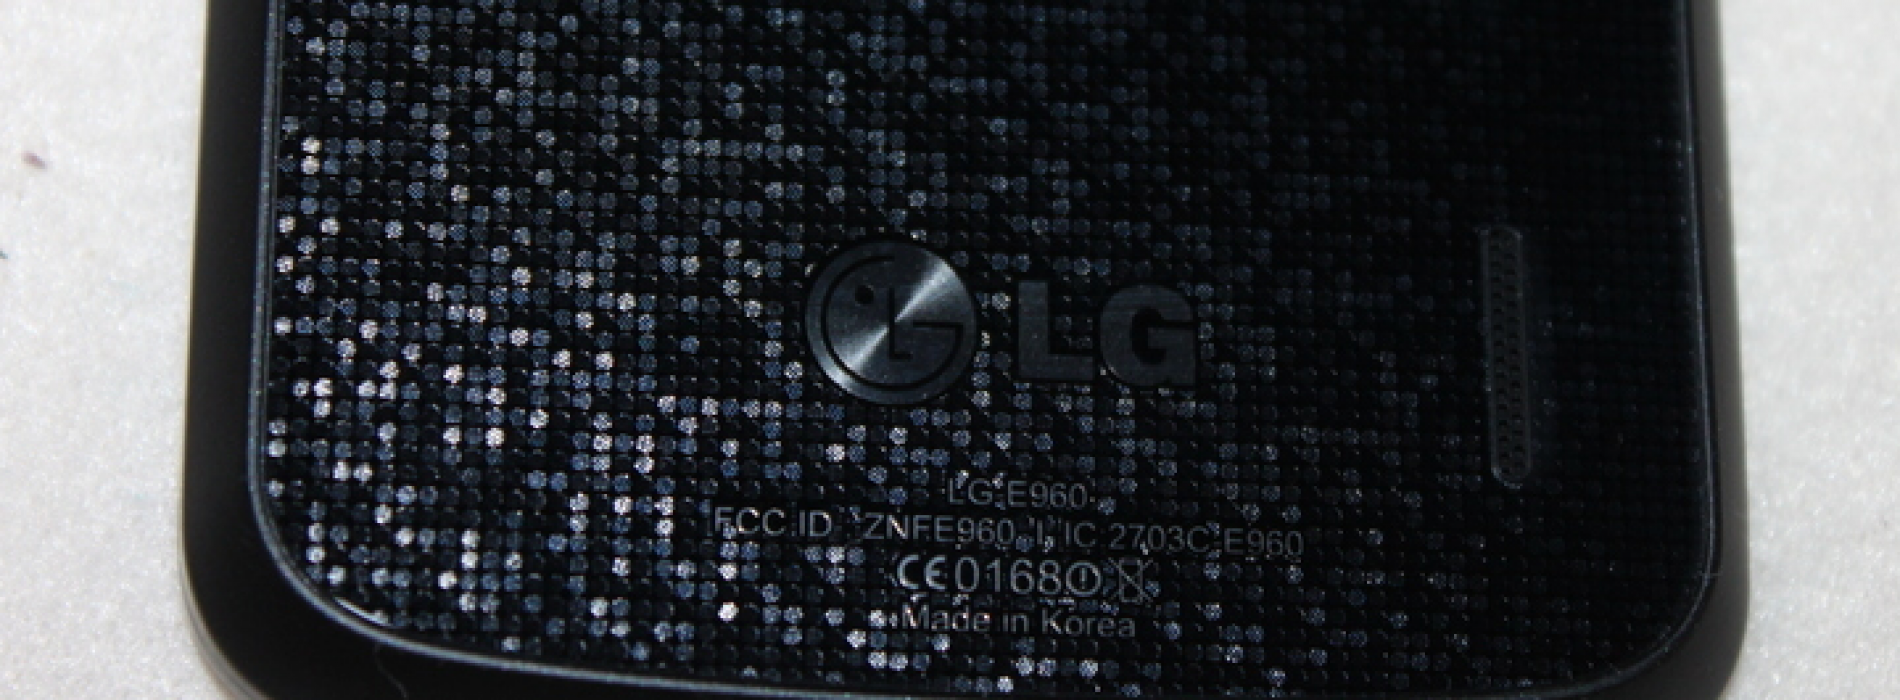 Here's your first look at the LG Optimus G Nexus